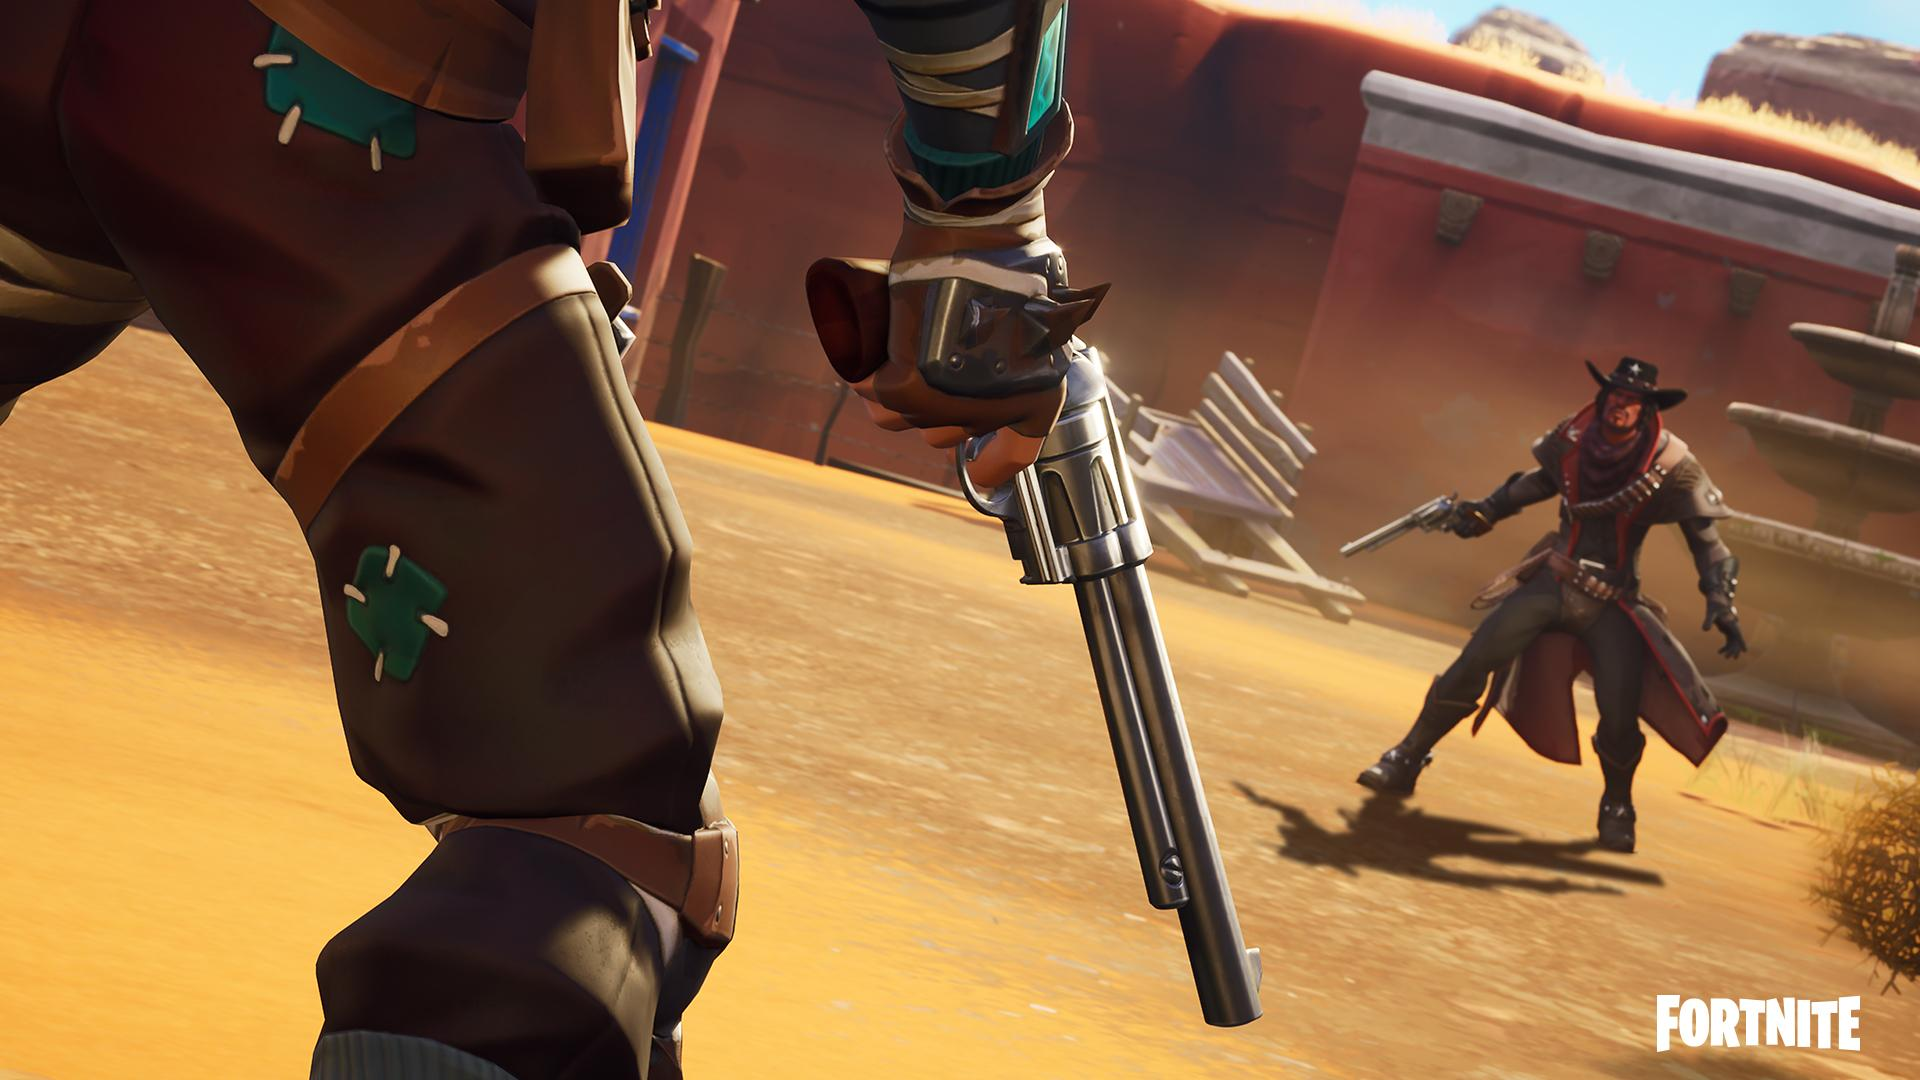 Fortnite Wild West Mode Now Live, New Dynamite Item Temporarily Disabled